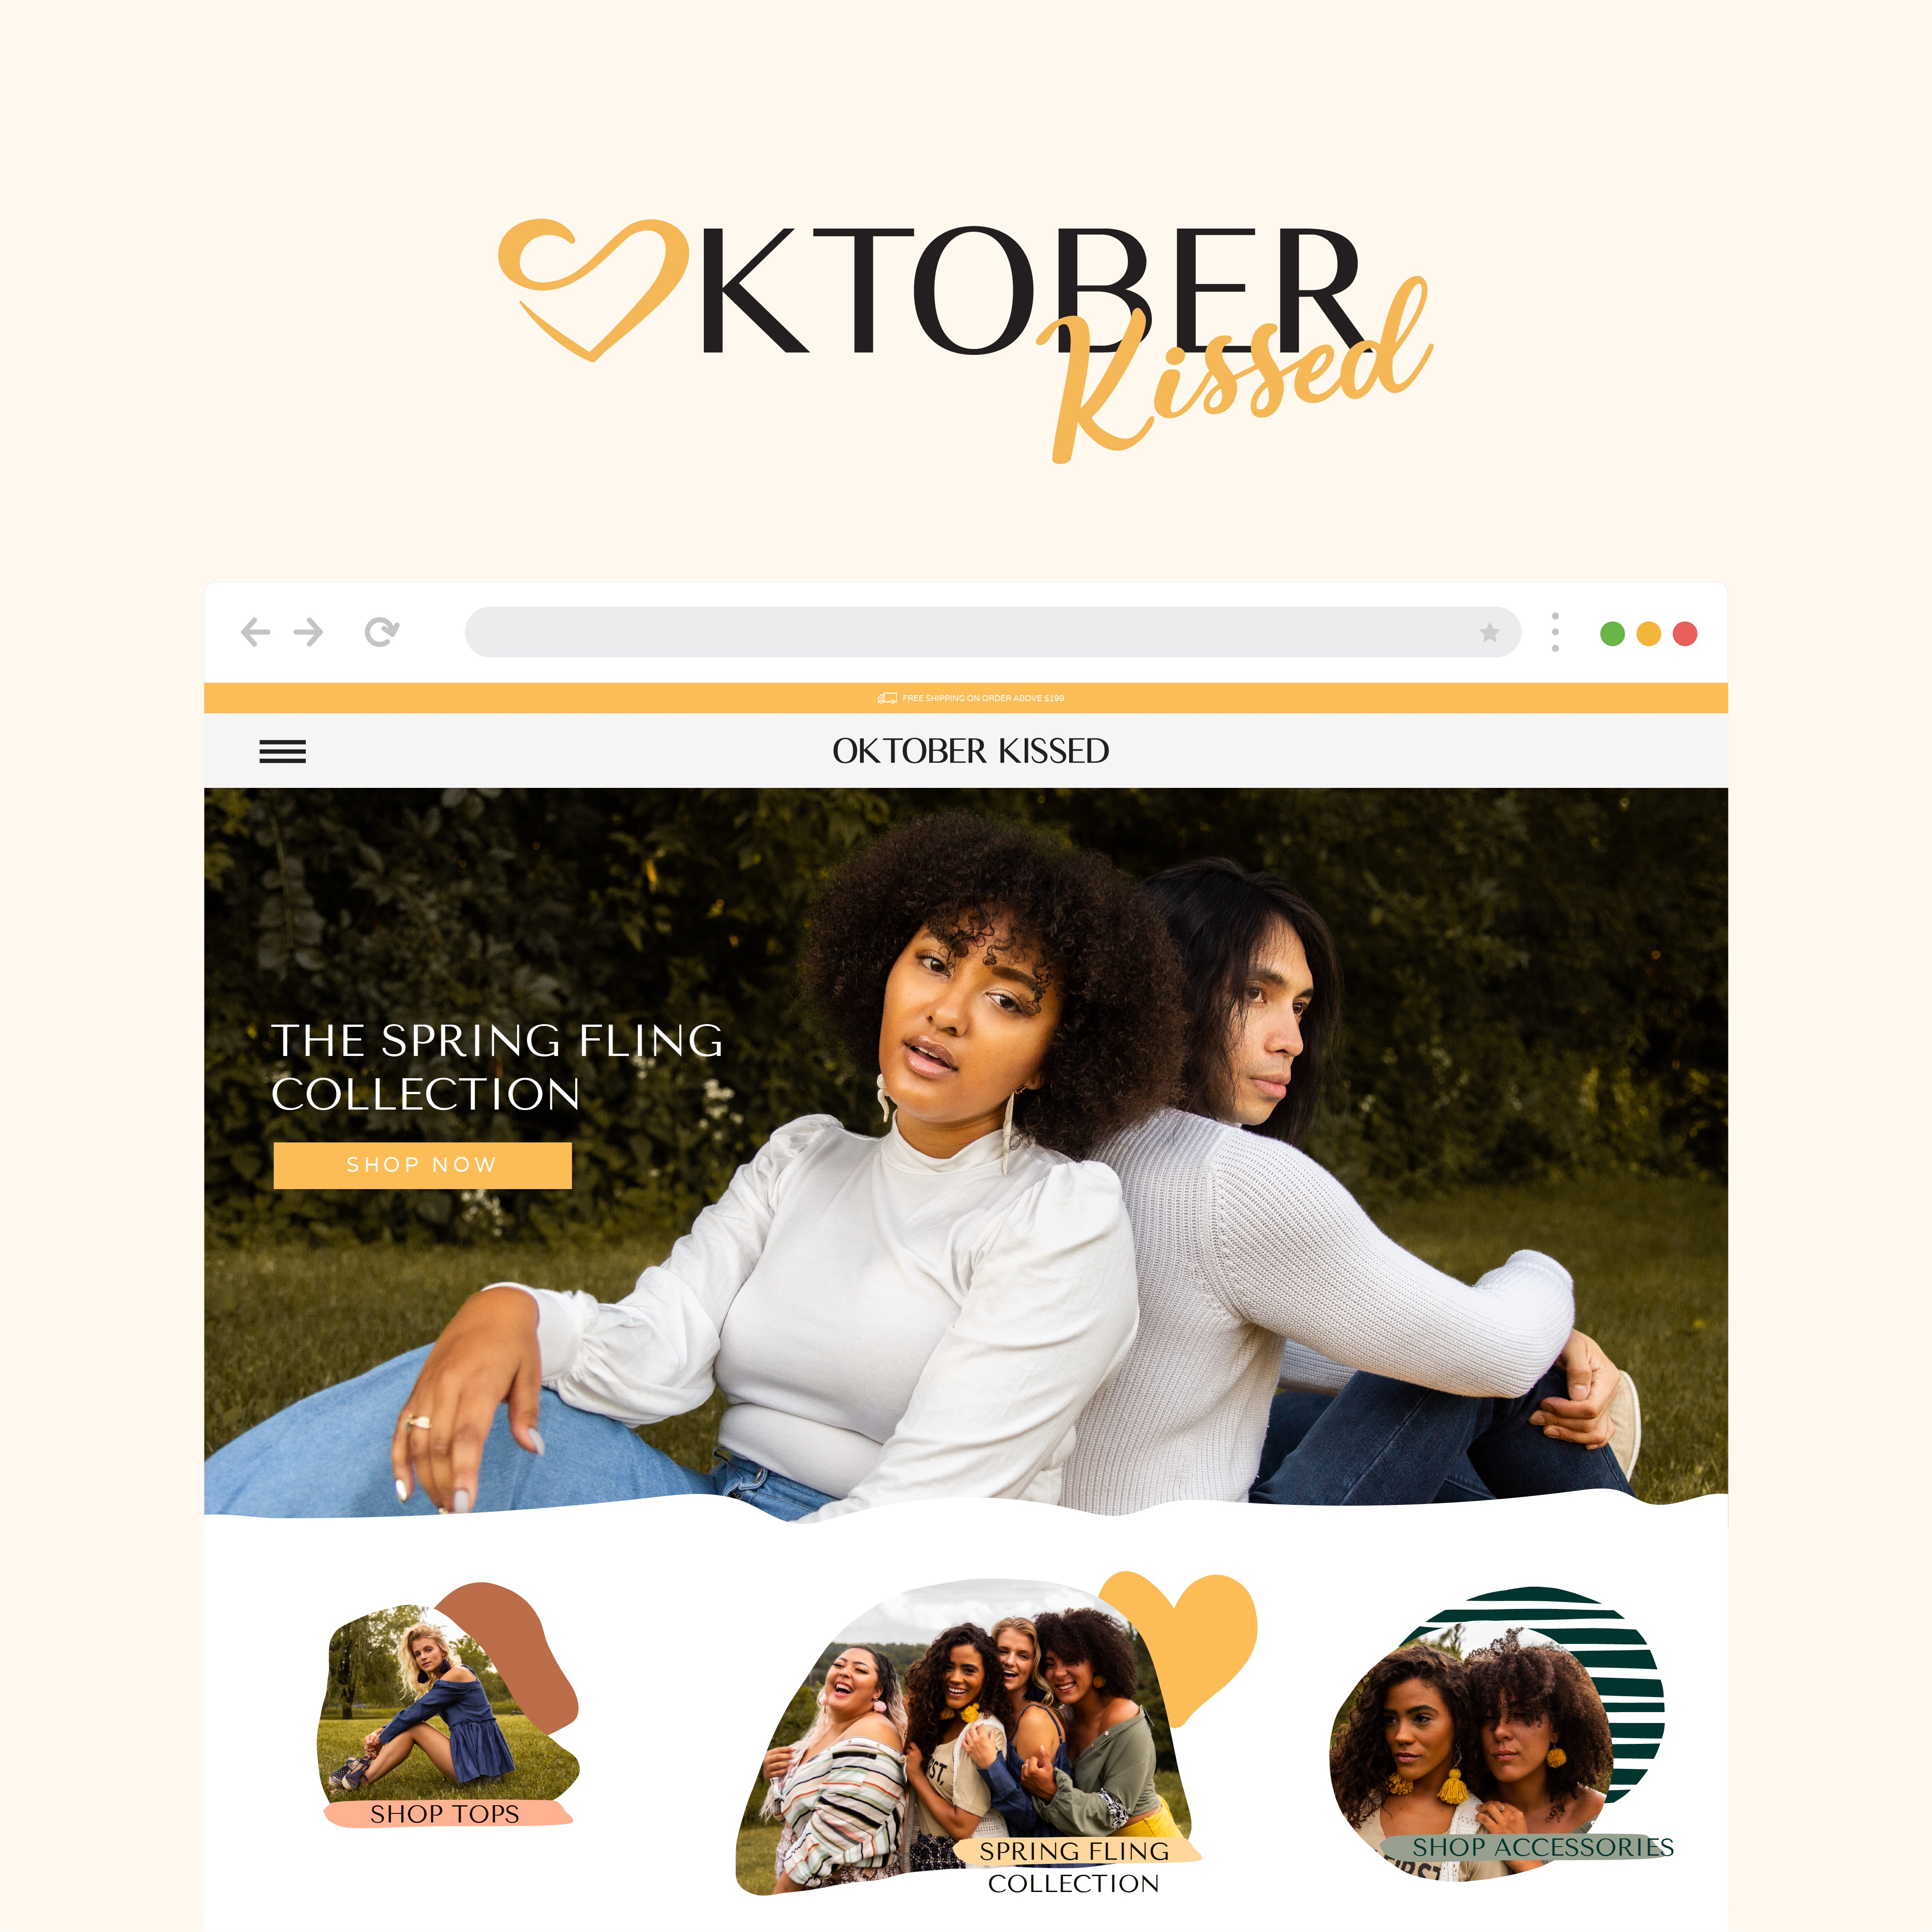 Oktober Kissed Website Mock Up